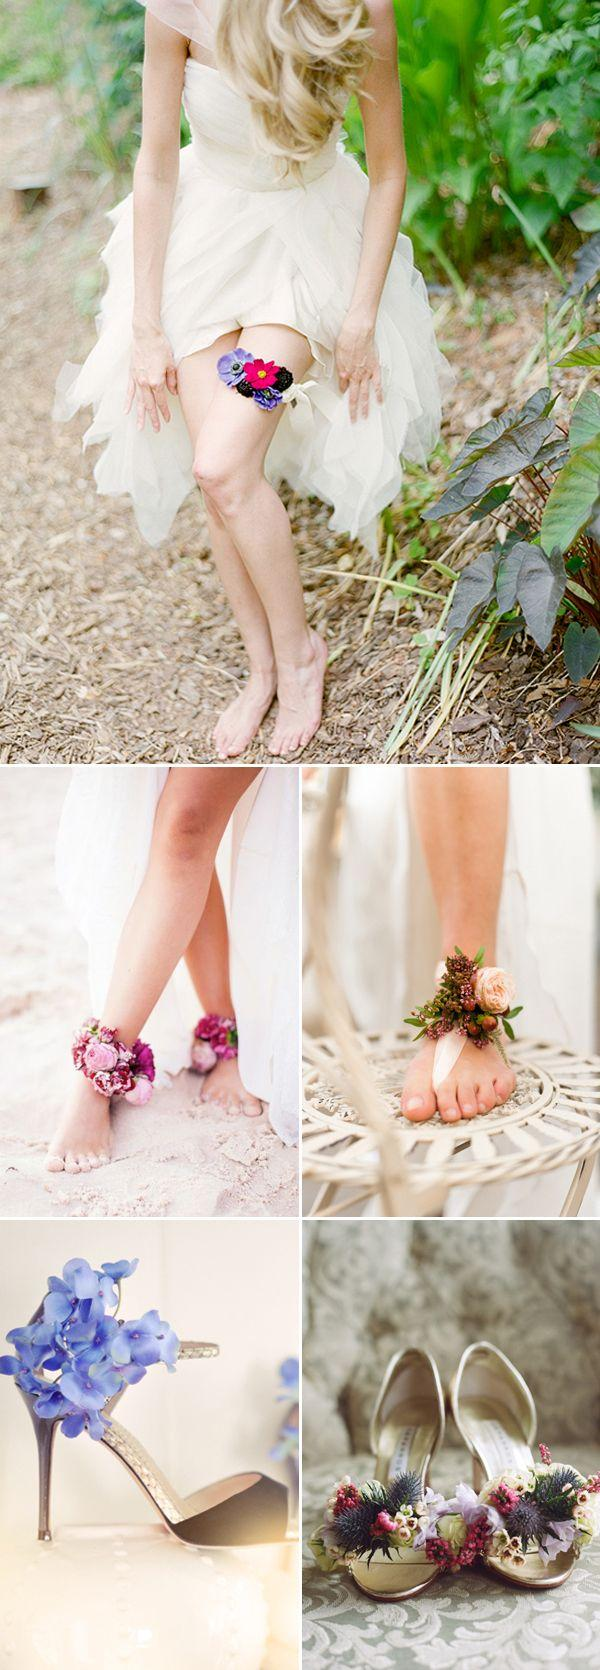 Hochzeit - 33 Beautiful Wearable Fresh Flower Ideas